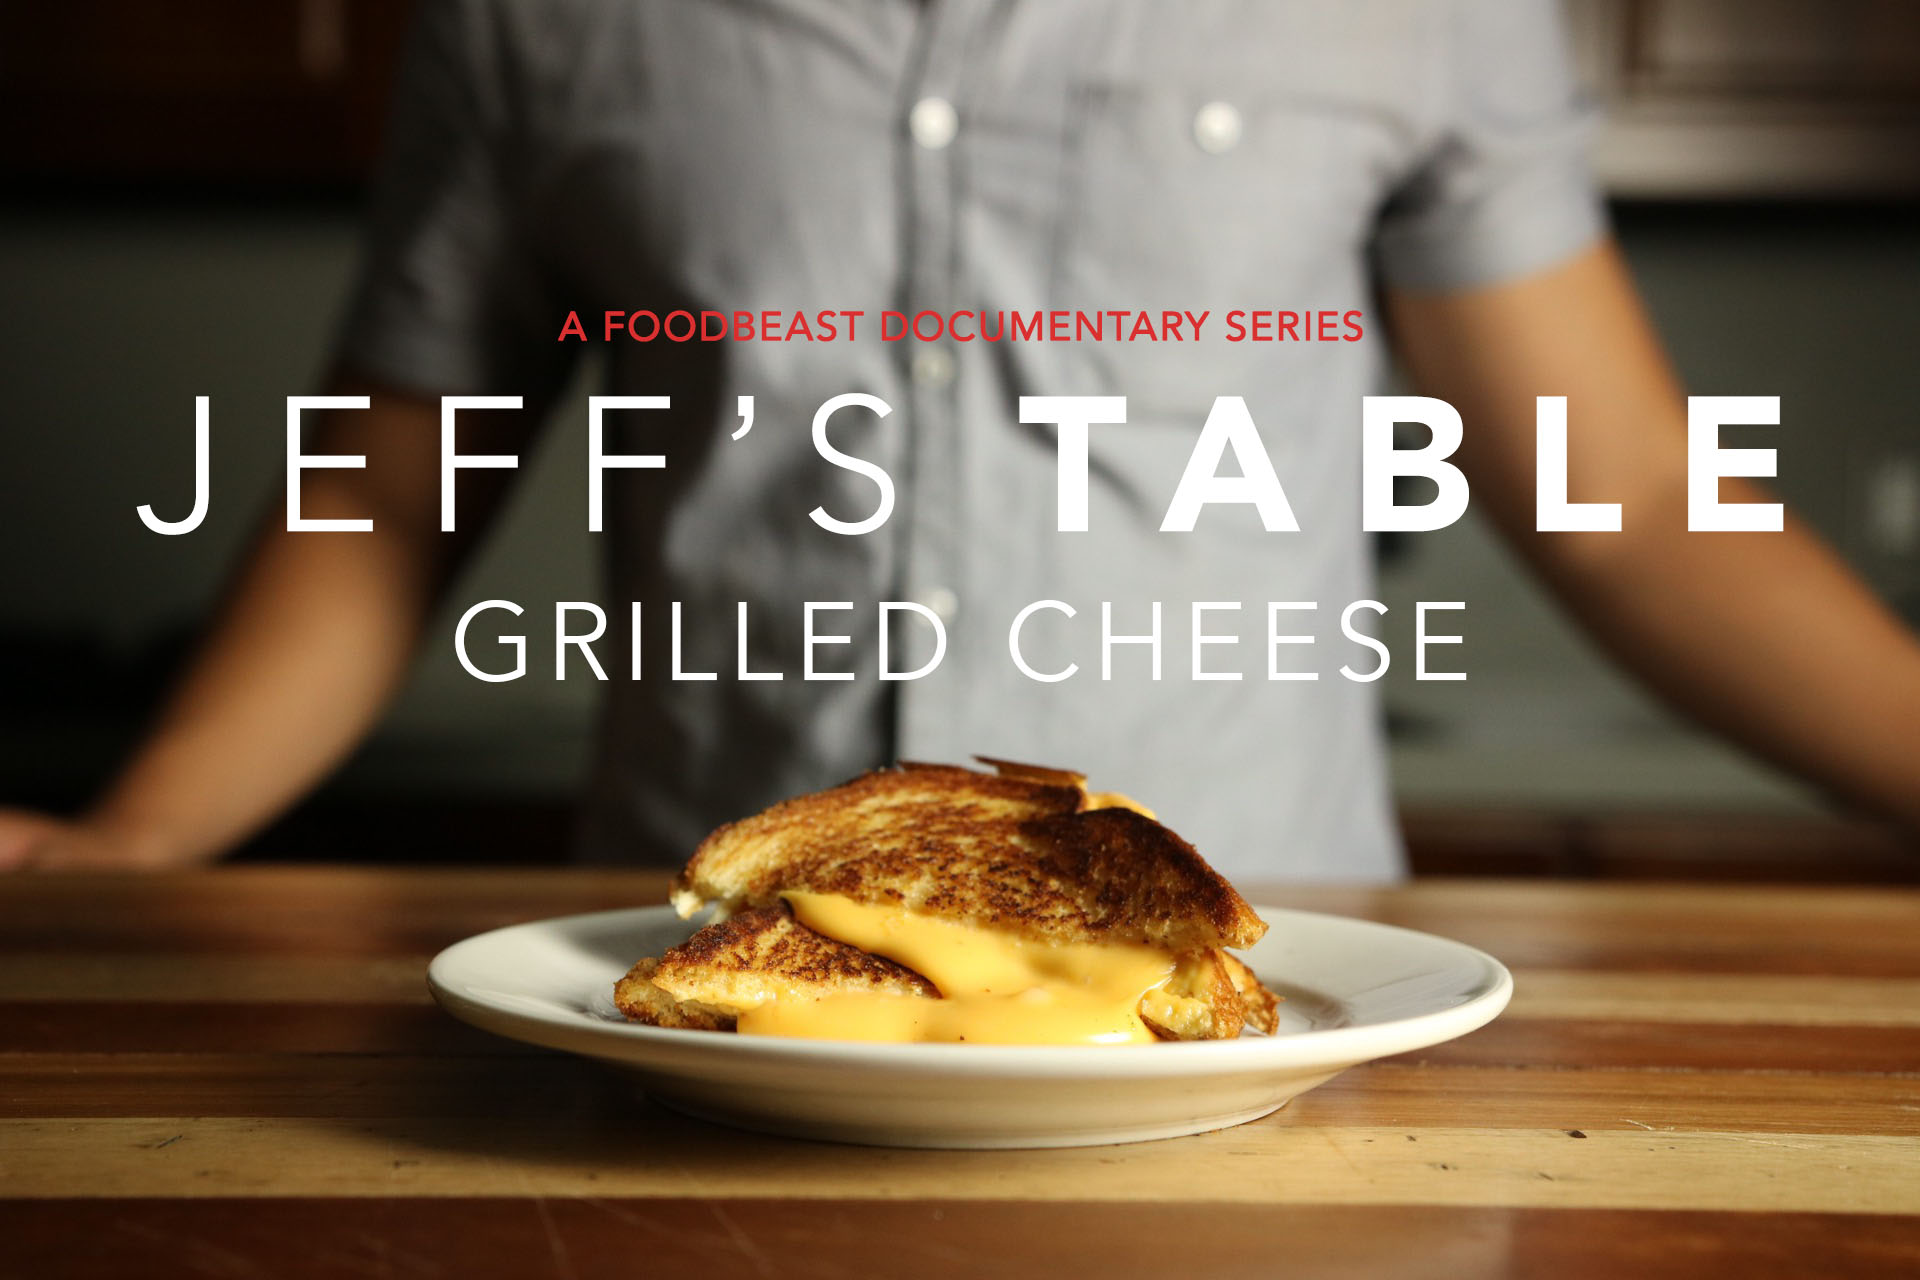 Jeff's_Table_Grilled_Cheese1